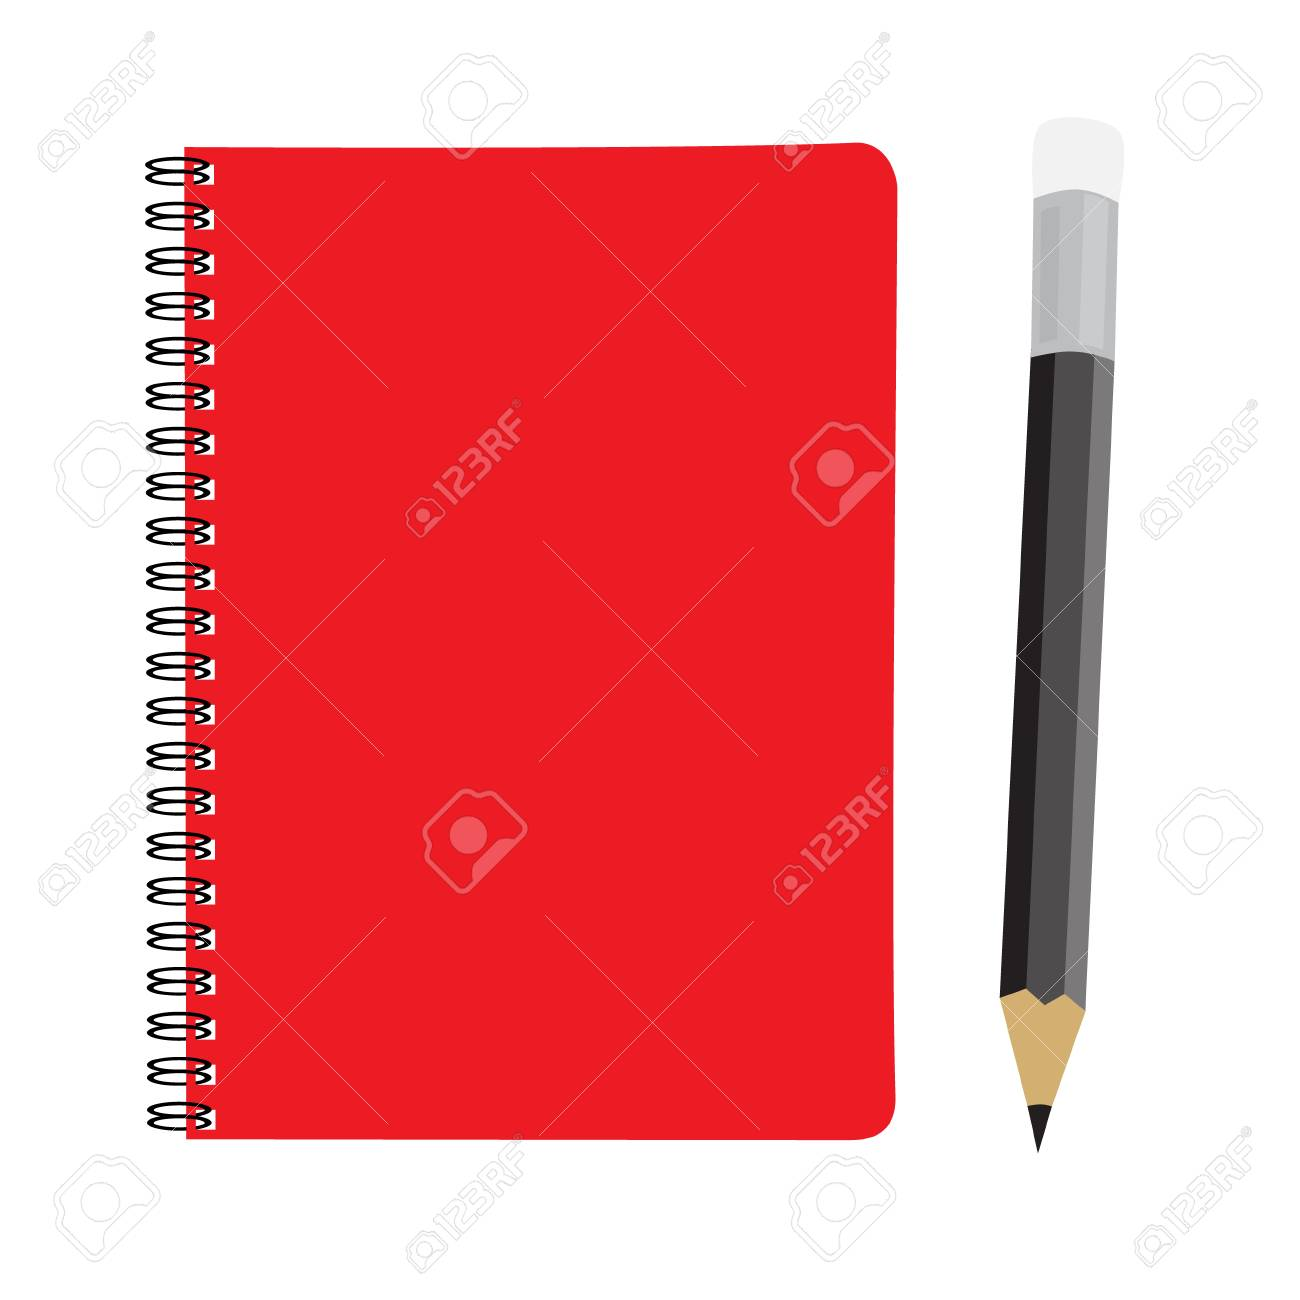 business red note book and pencil set vector illustration royalty